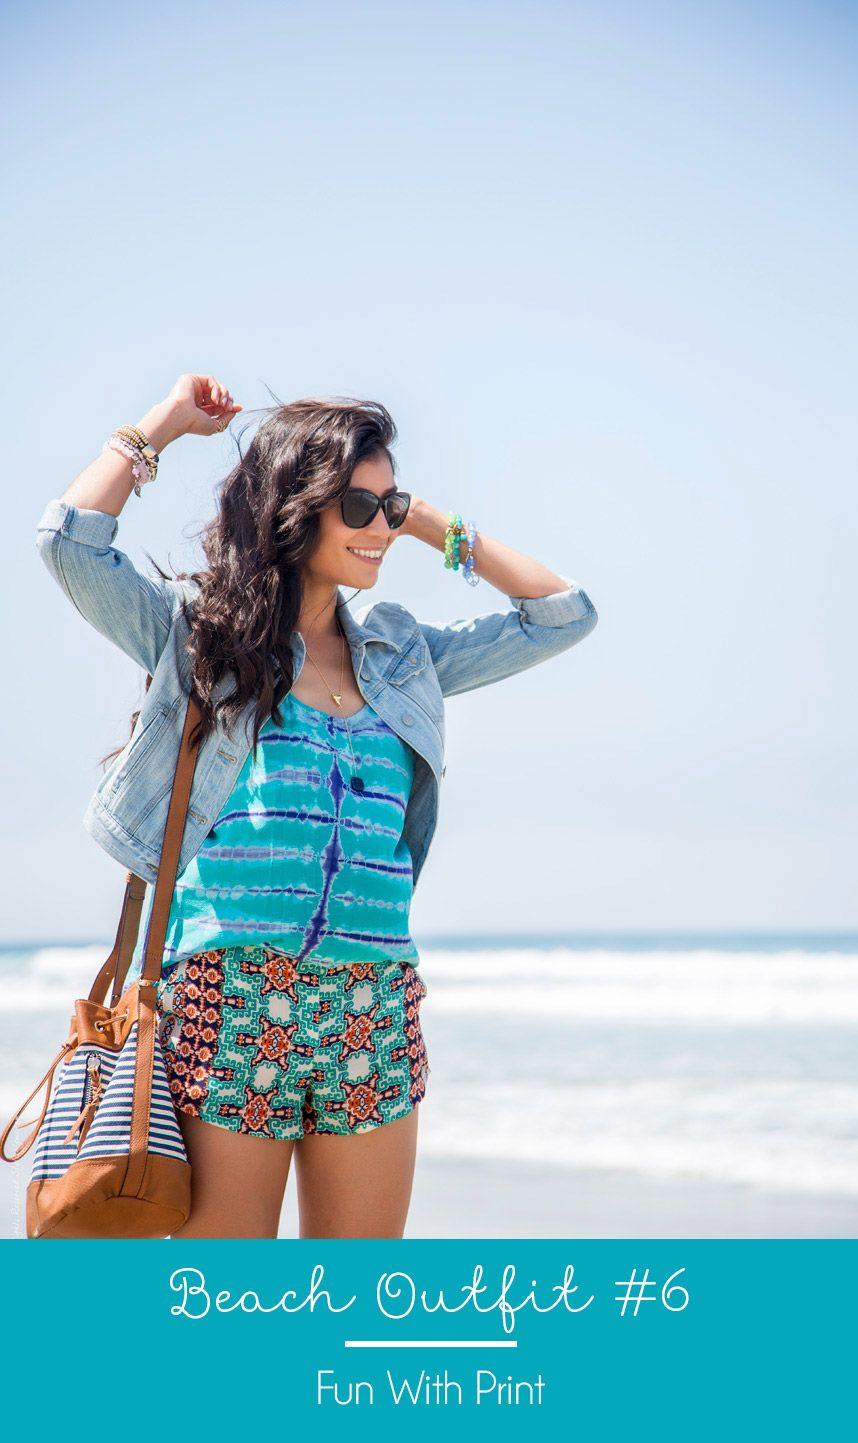 13f65d3676 Cute Outfit for the Beach - Visit Stylishlyme.com to view the other 20 summer  outfits